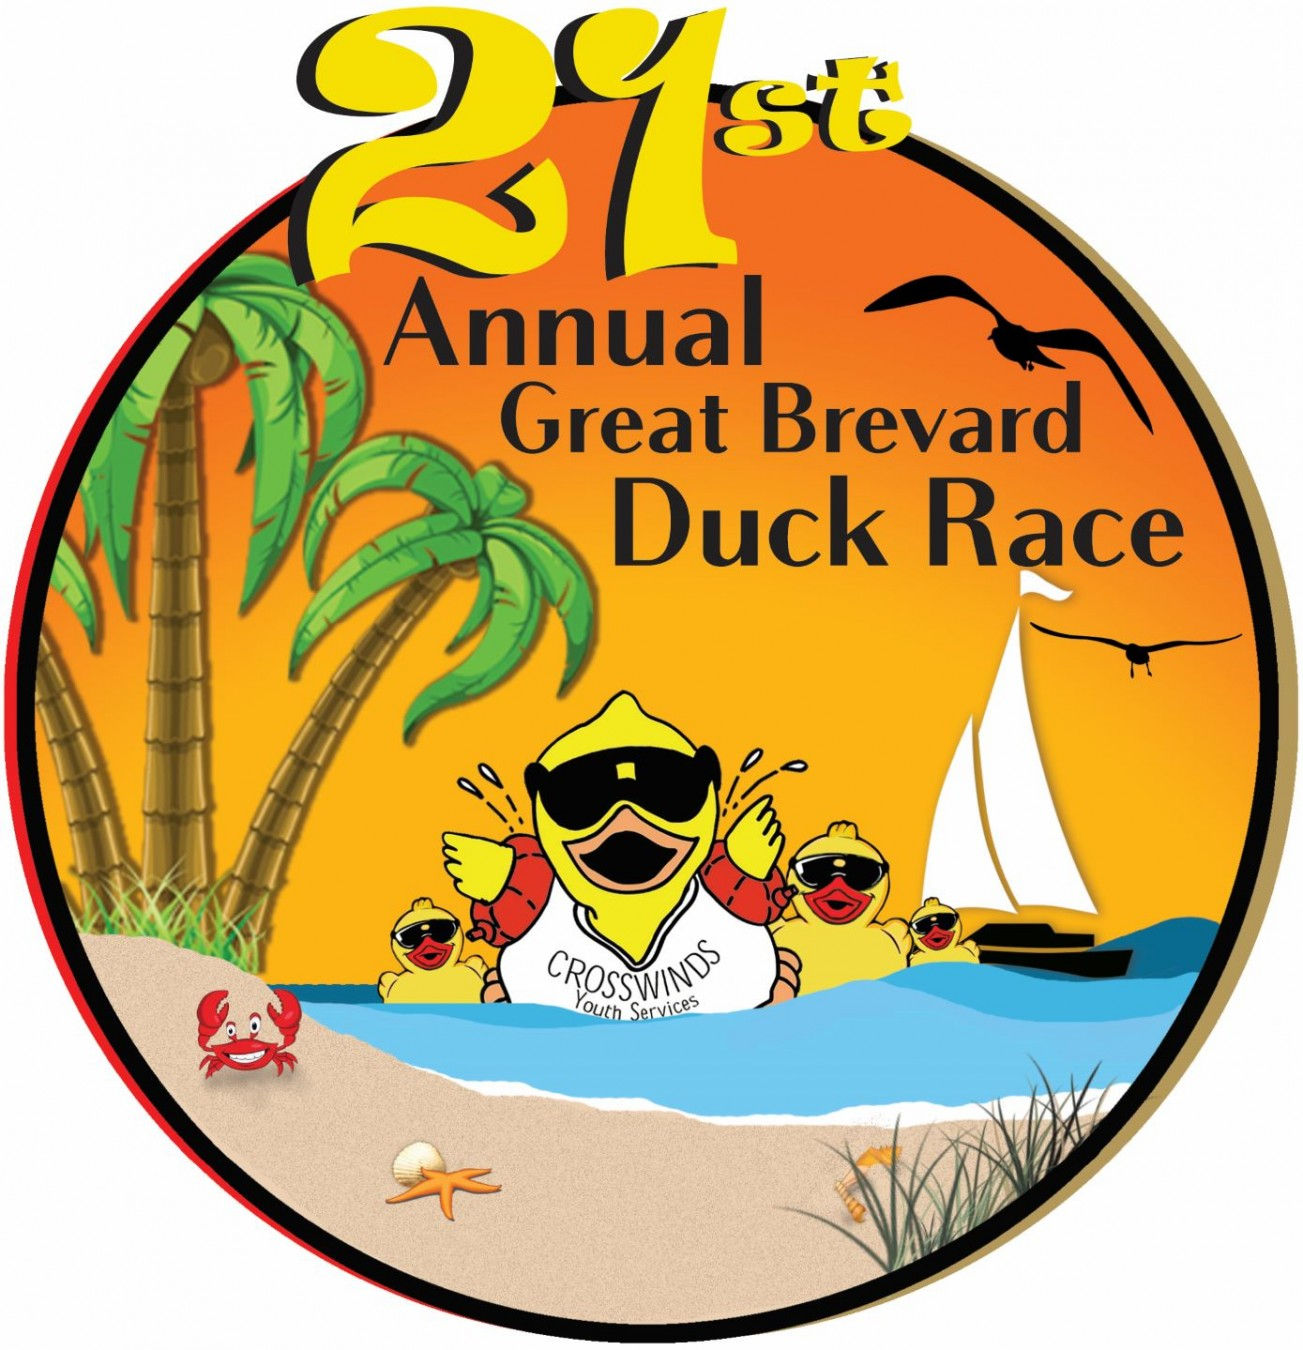 The 21st Annual Great Brevard Duck Race